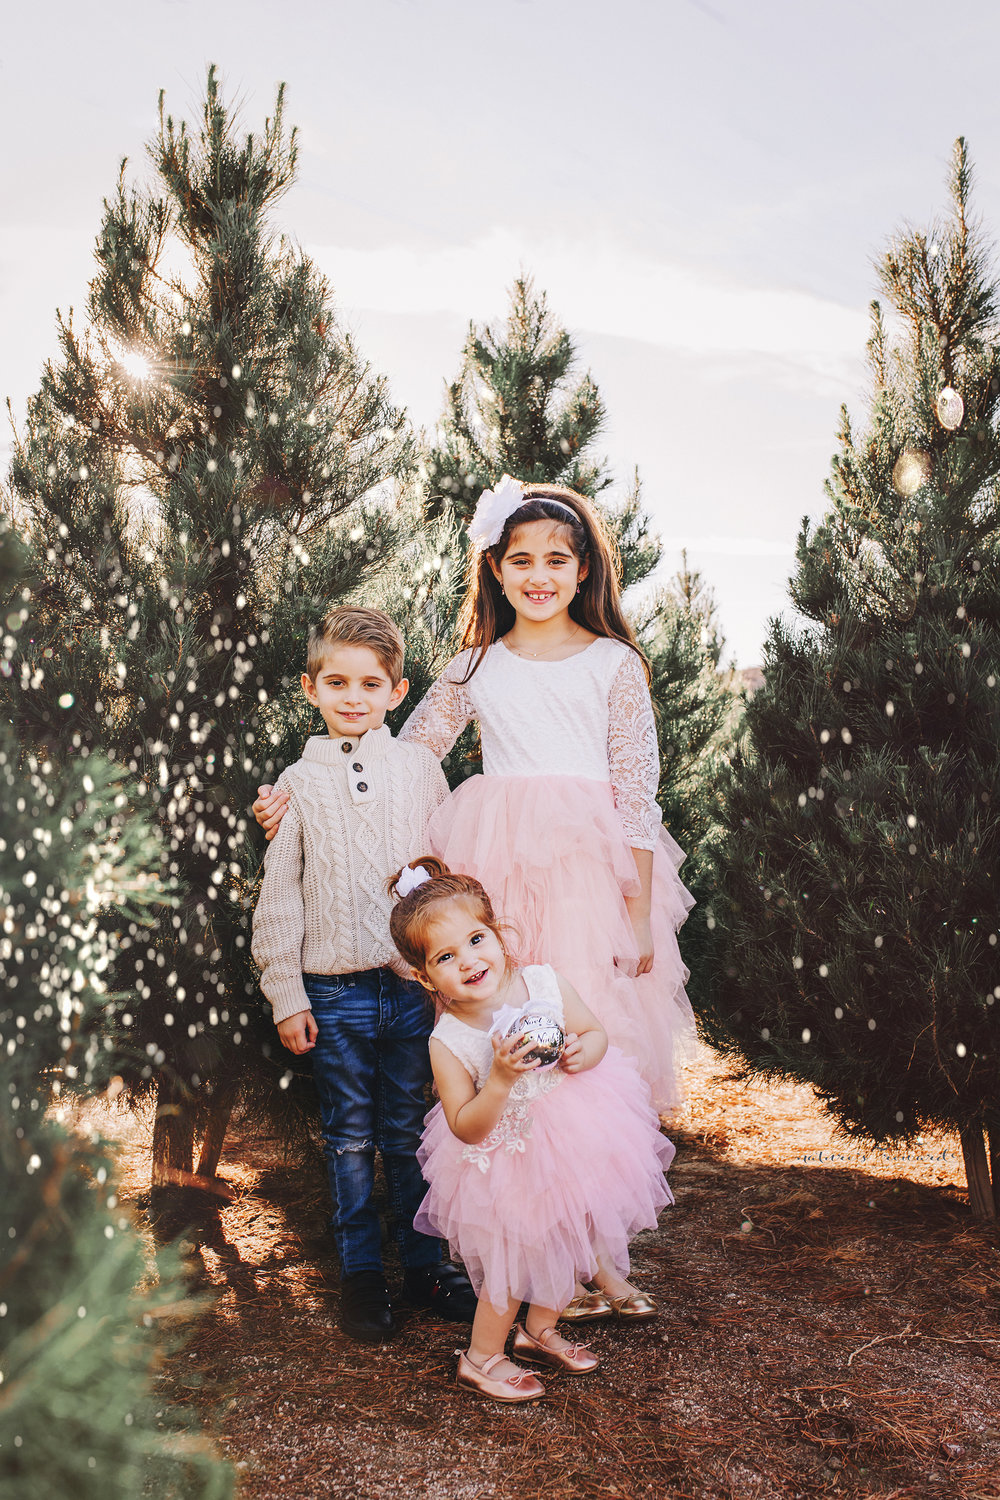 A sibling portrait with Big Sister, Big Brother and little sister -A Christmas tree farm portrait by Nature's Reward Photography